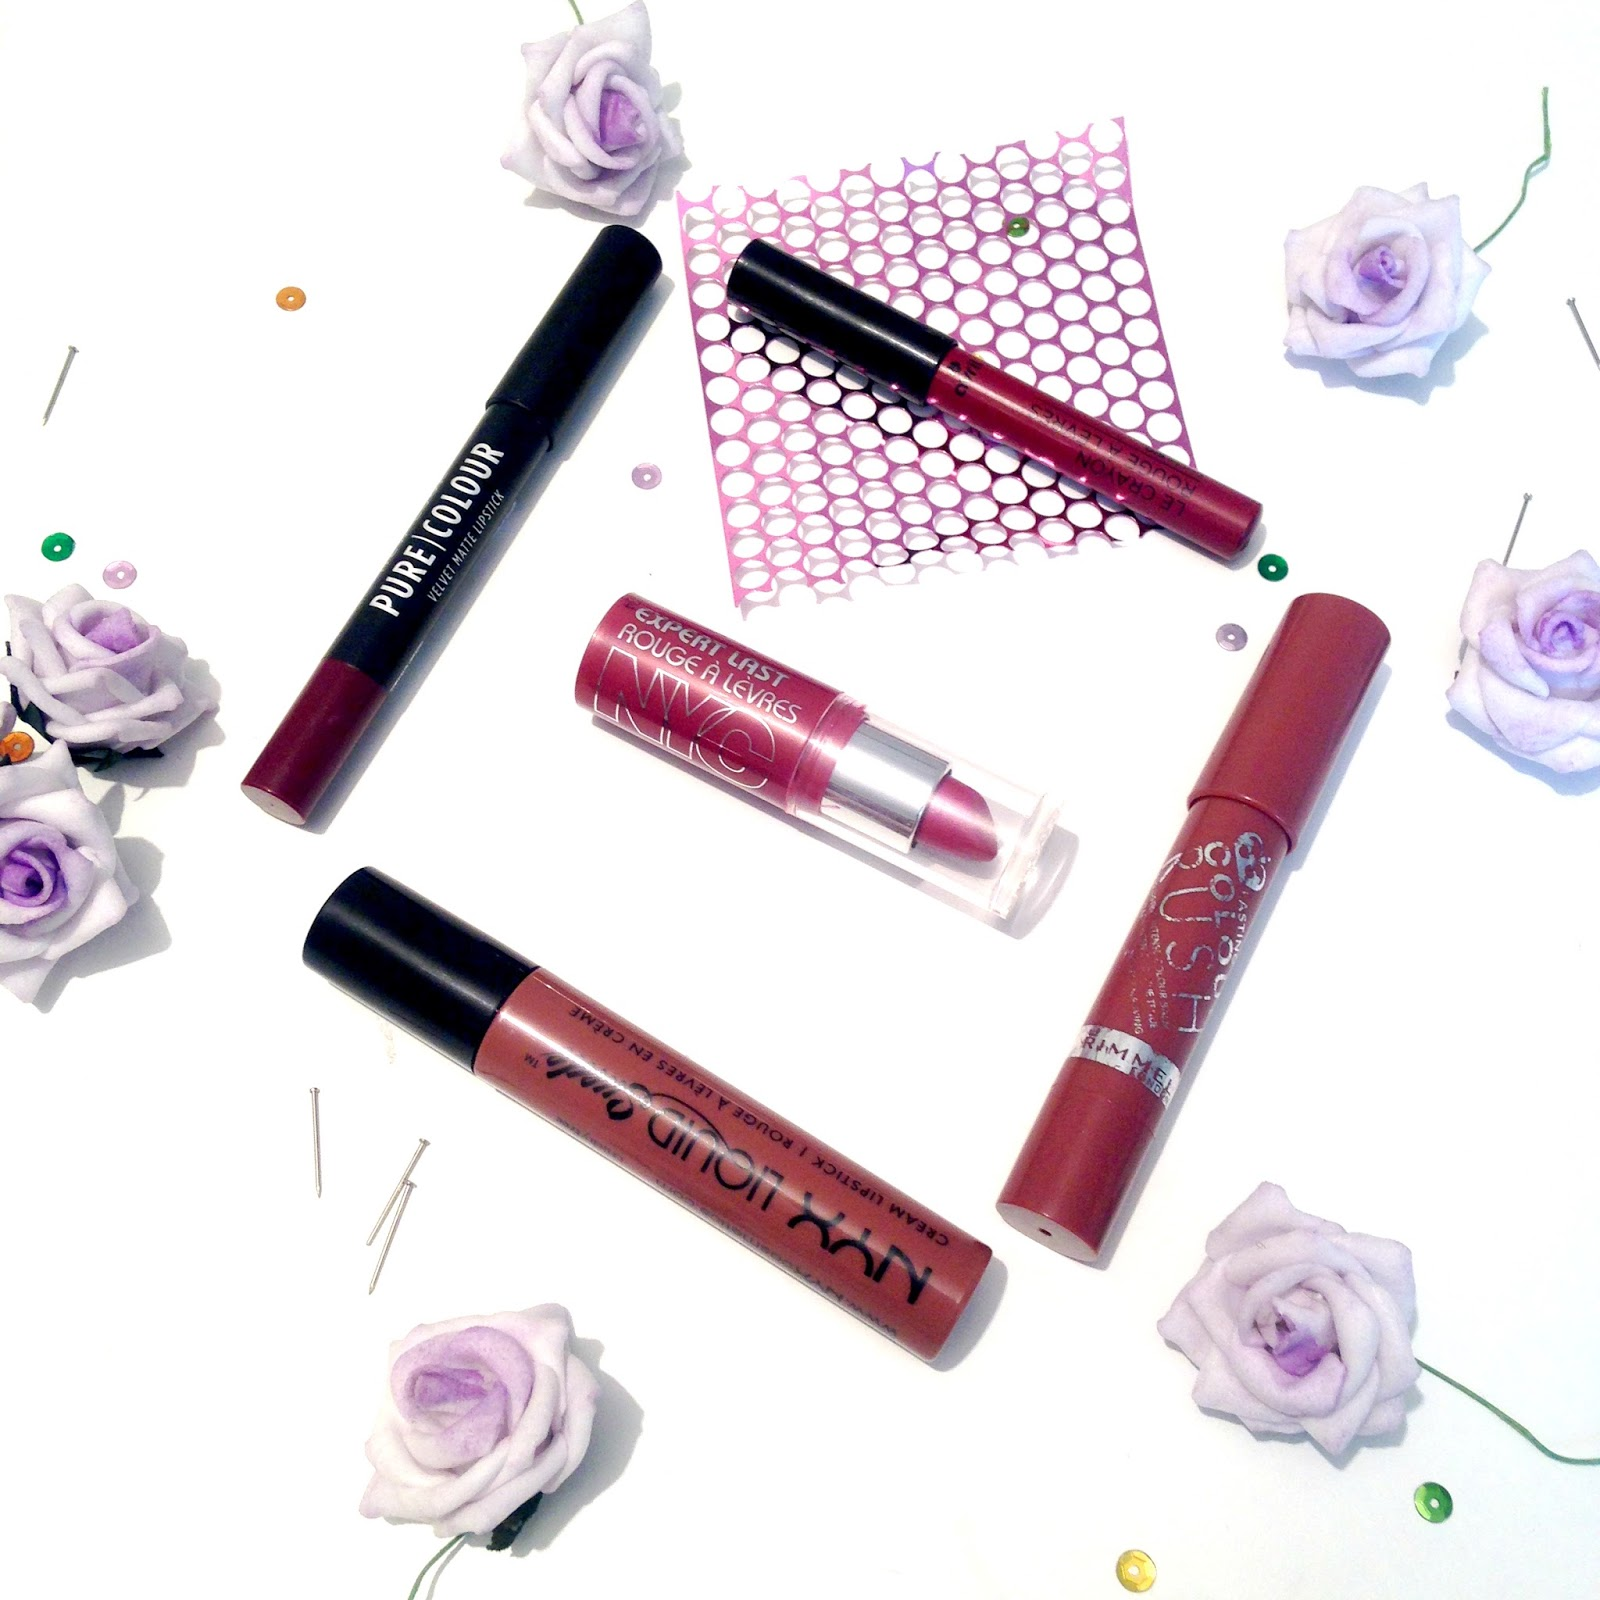 My Go-To Lipsticks All Under £10